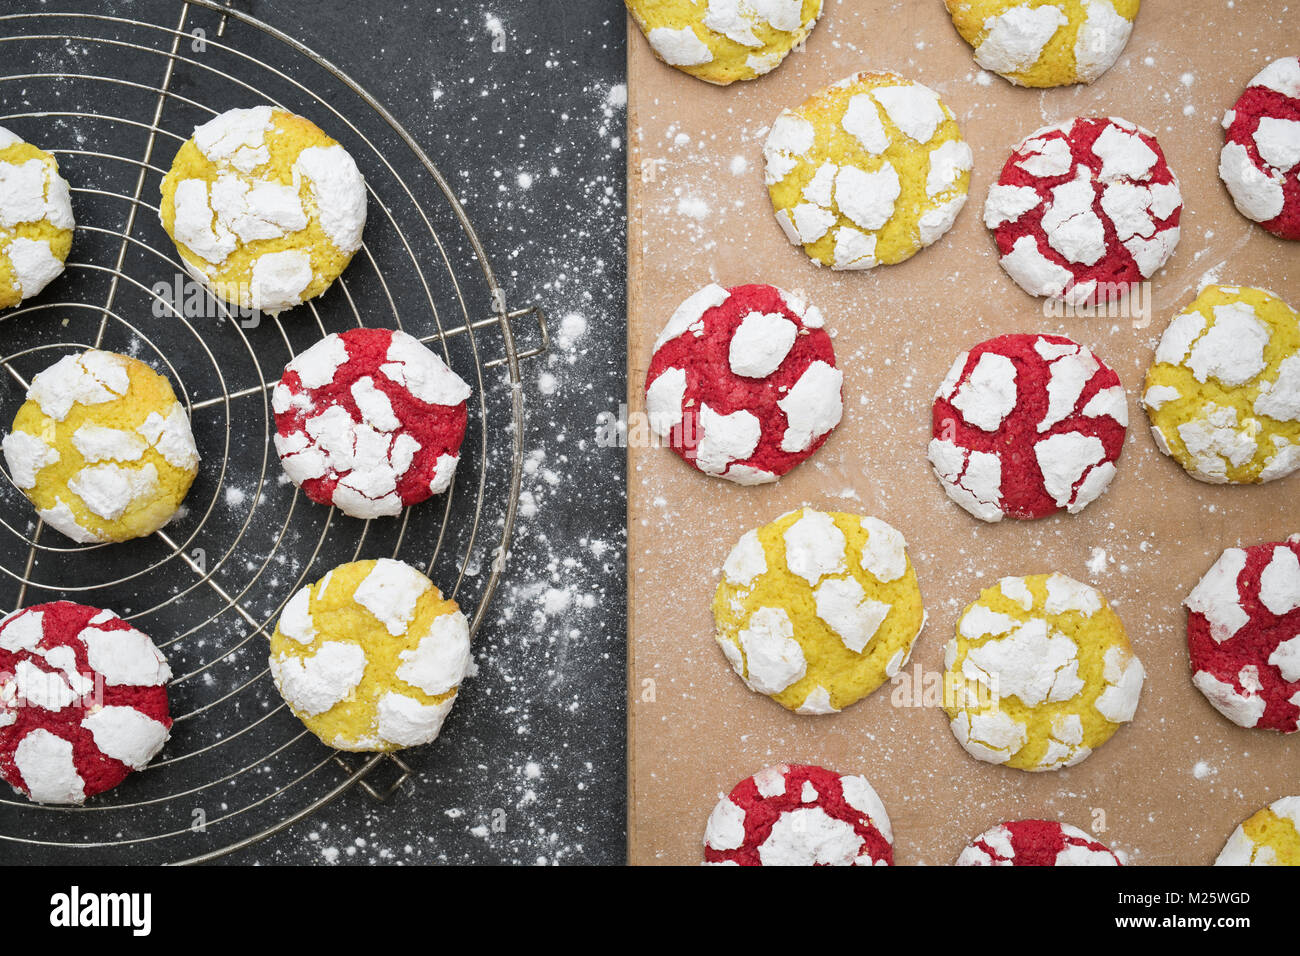 Homemade Lemon and Raspberry Crinkle Cookies on a cooling rack on slate background Stock Photo